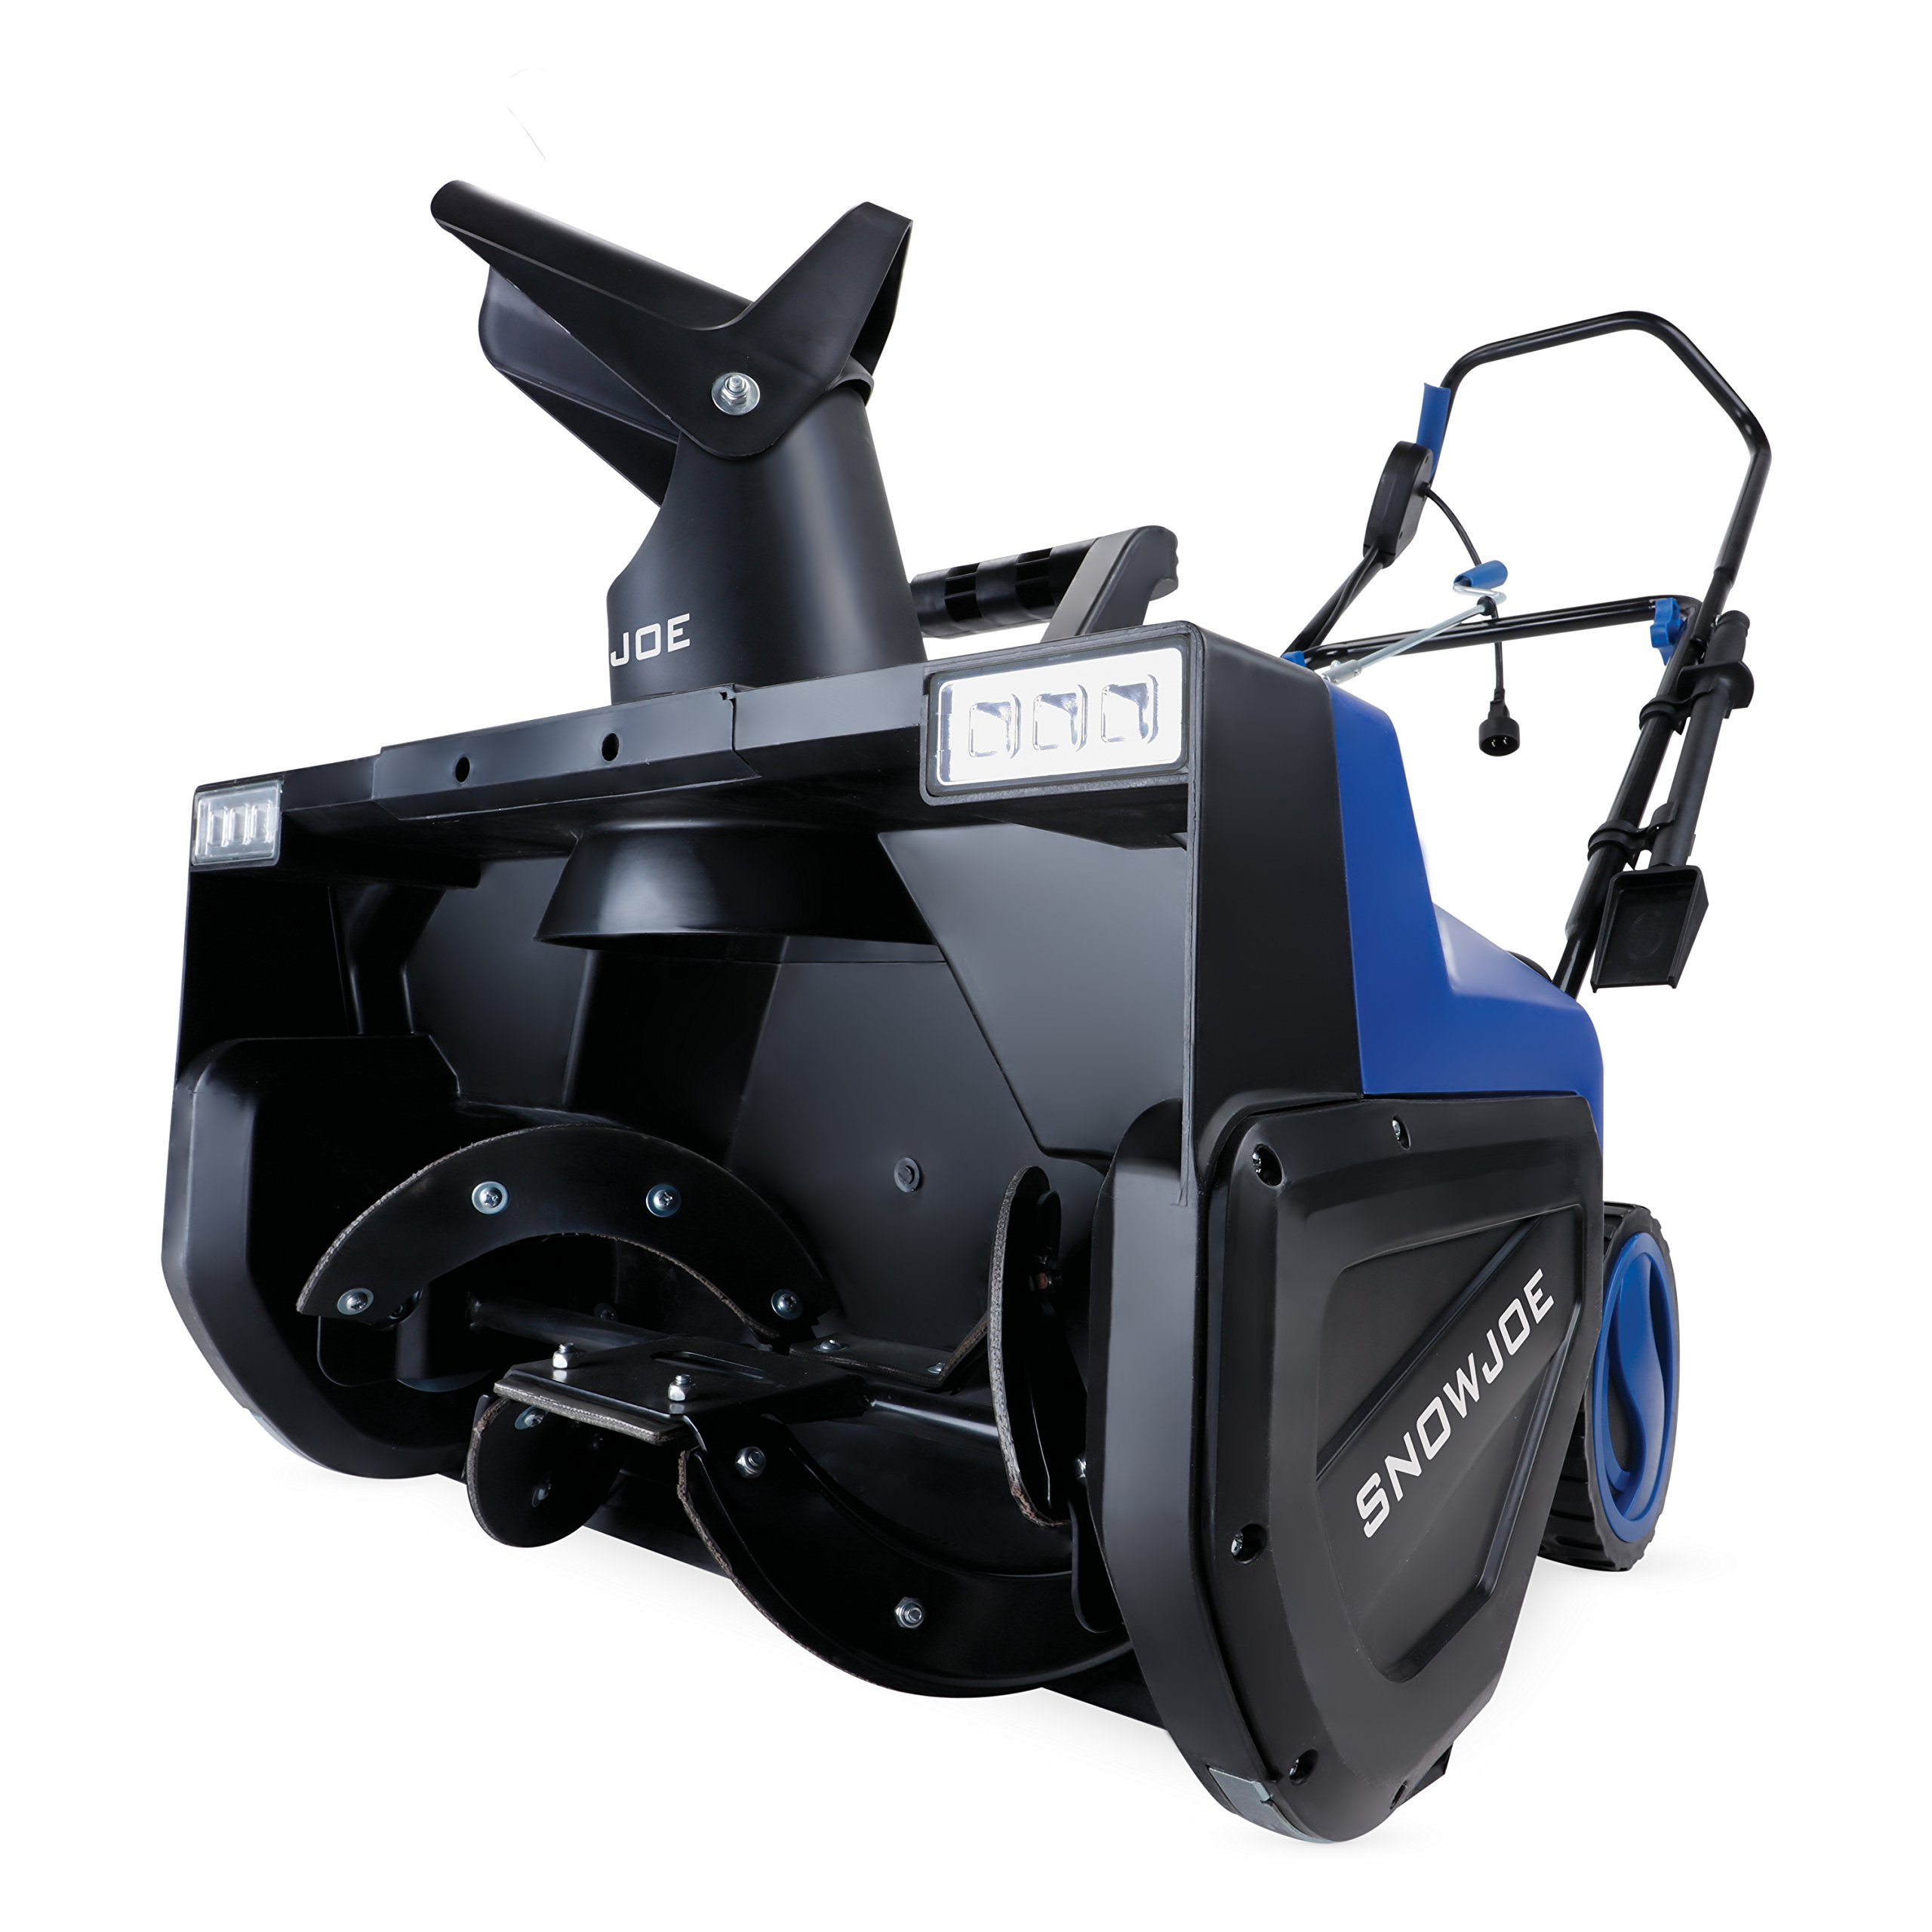 Snow Joe SJ627E 22-Inch 15-Amp Electric Snow Blower w/Headlight